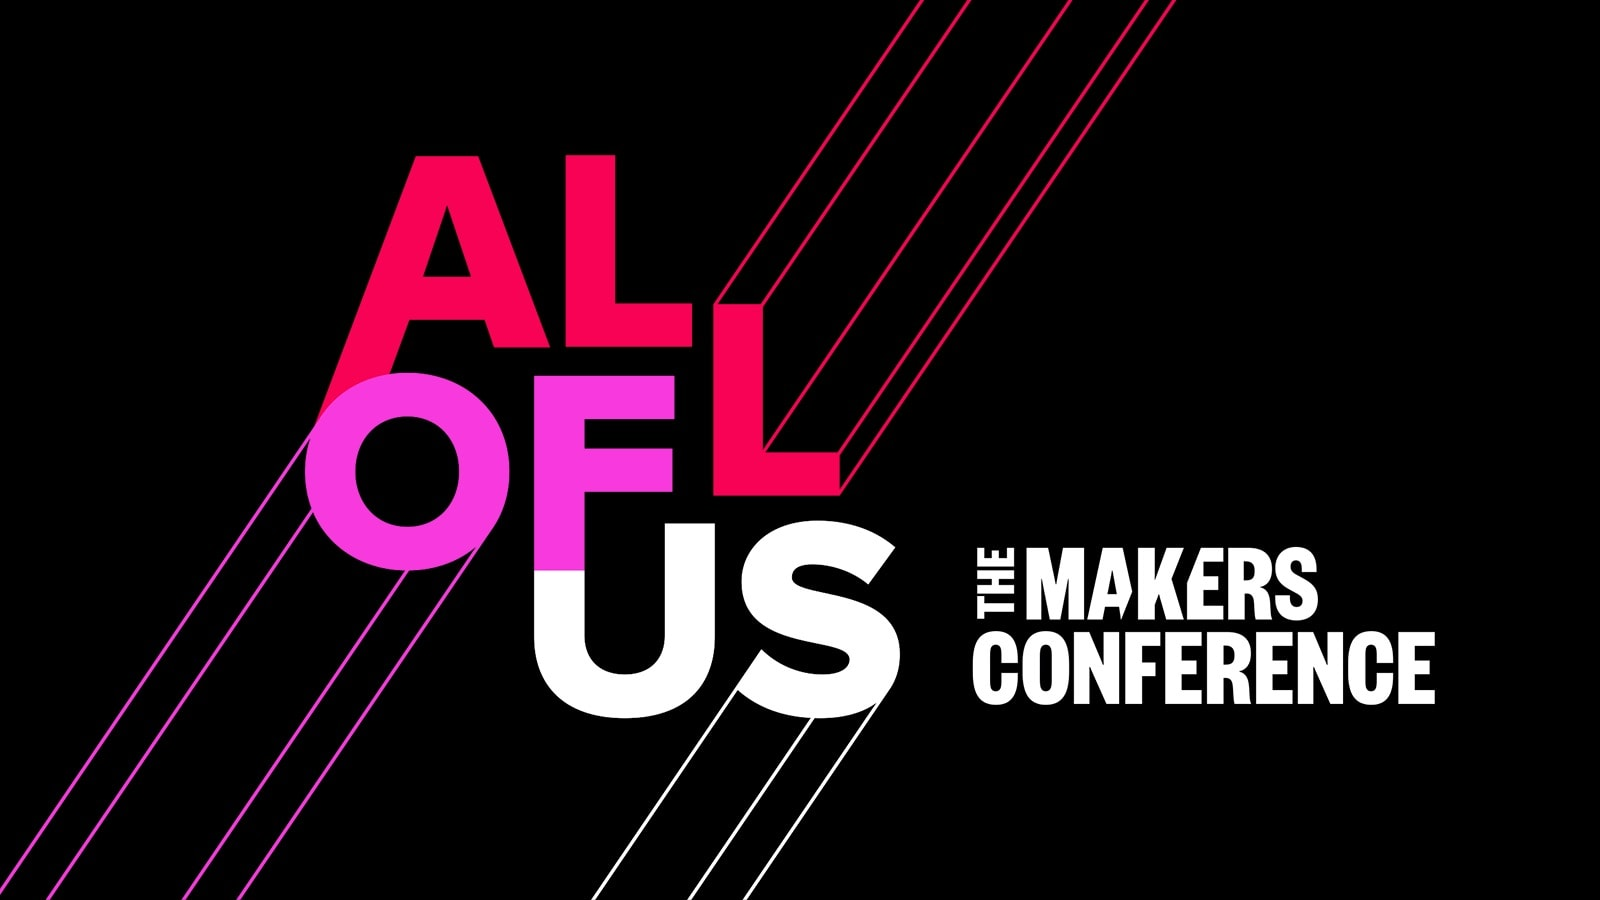 0cf1e57de The 2019 MAKERS Conference